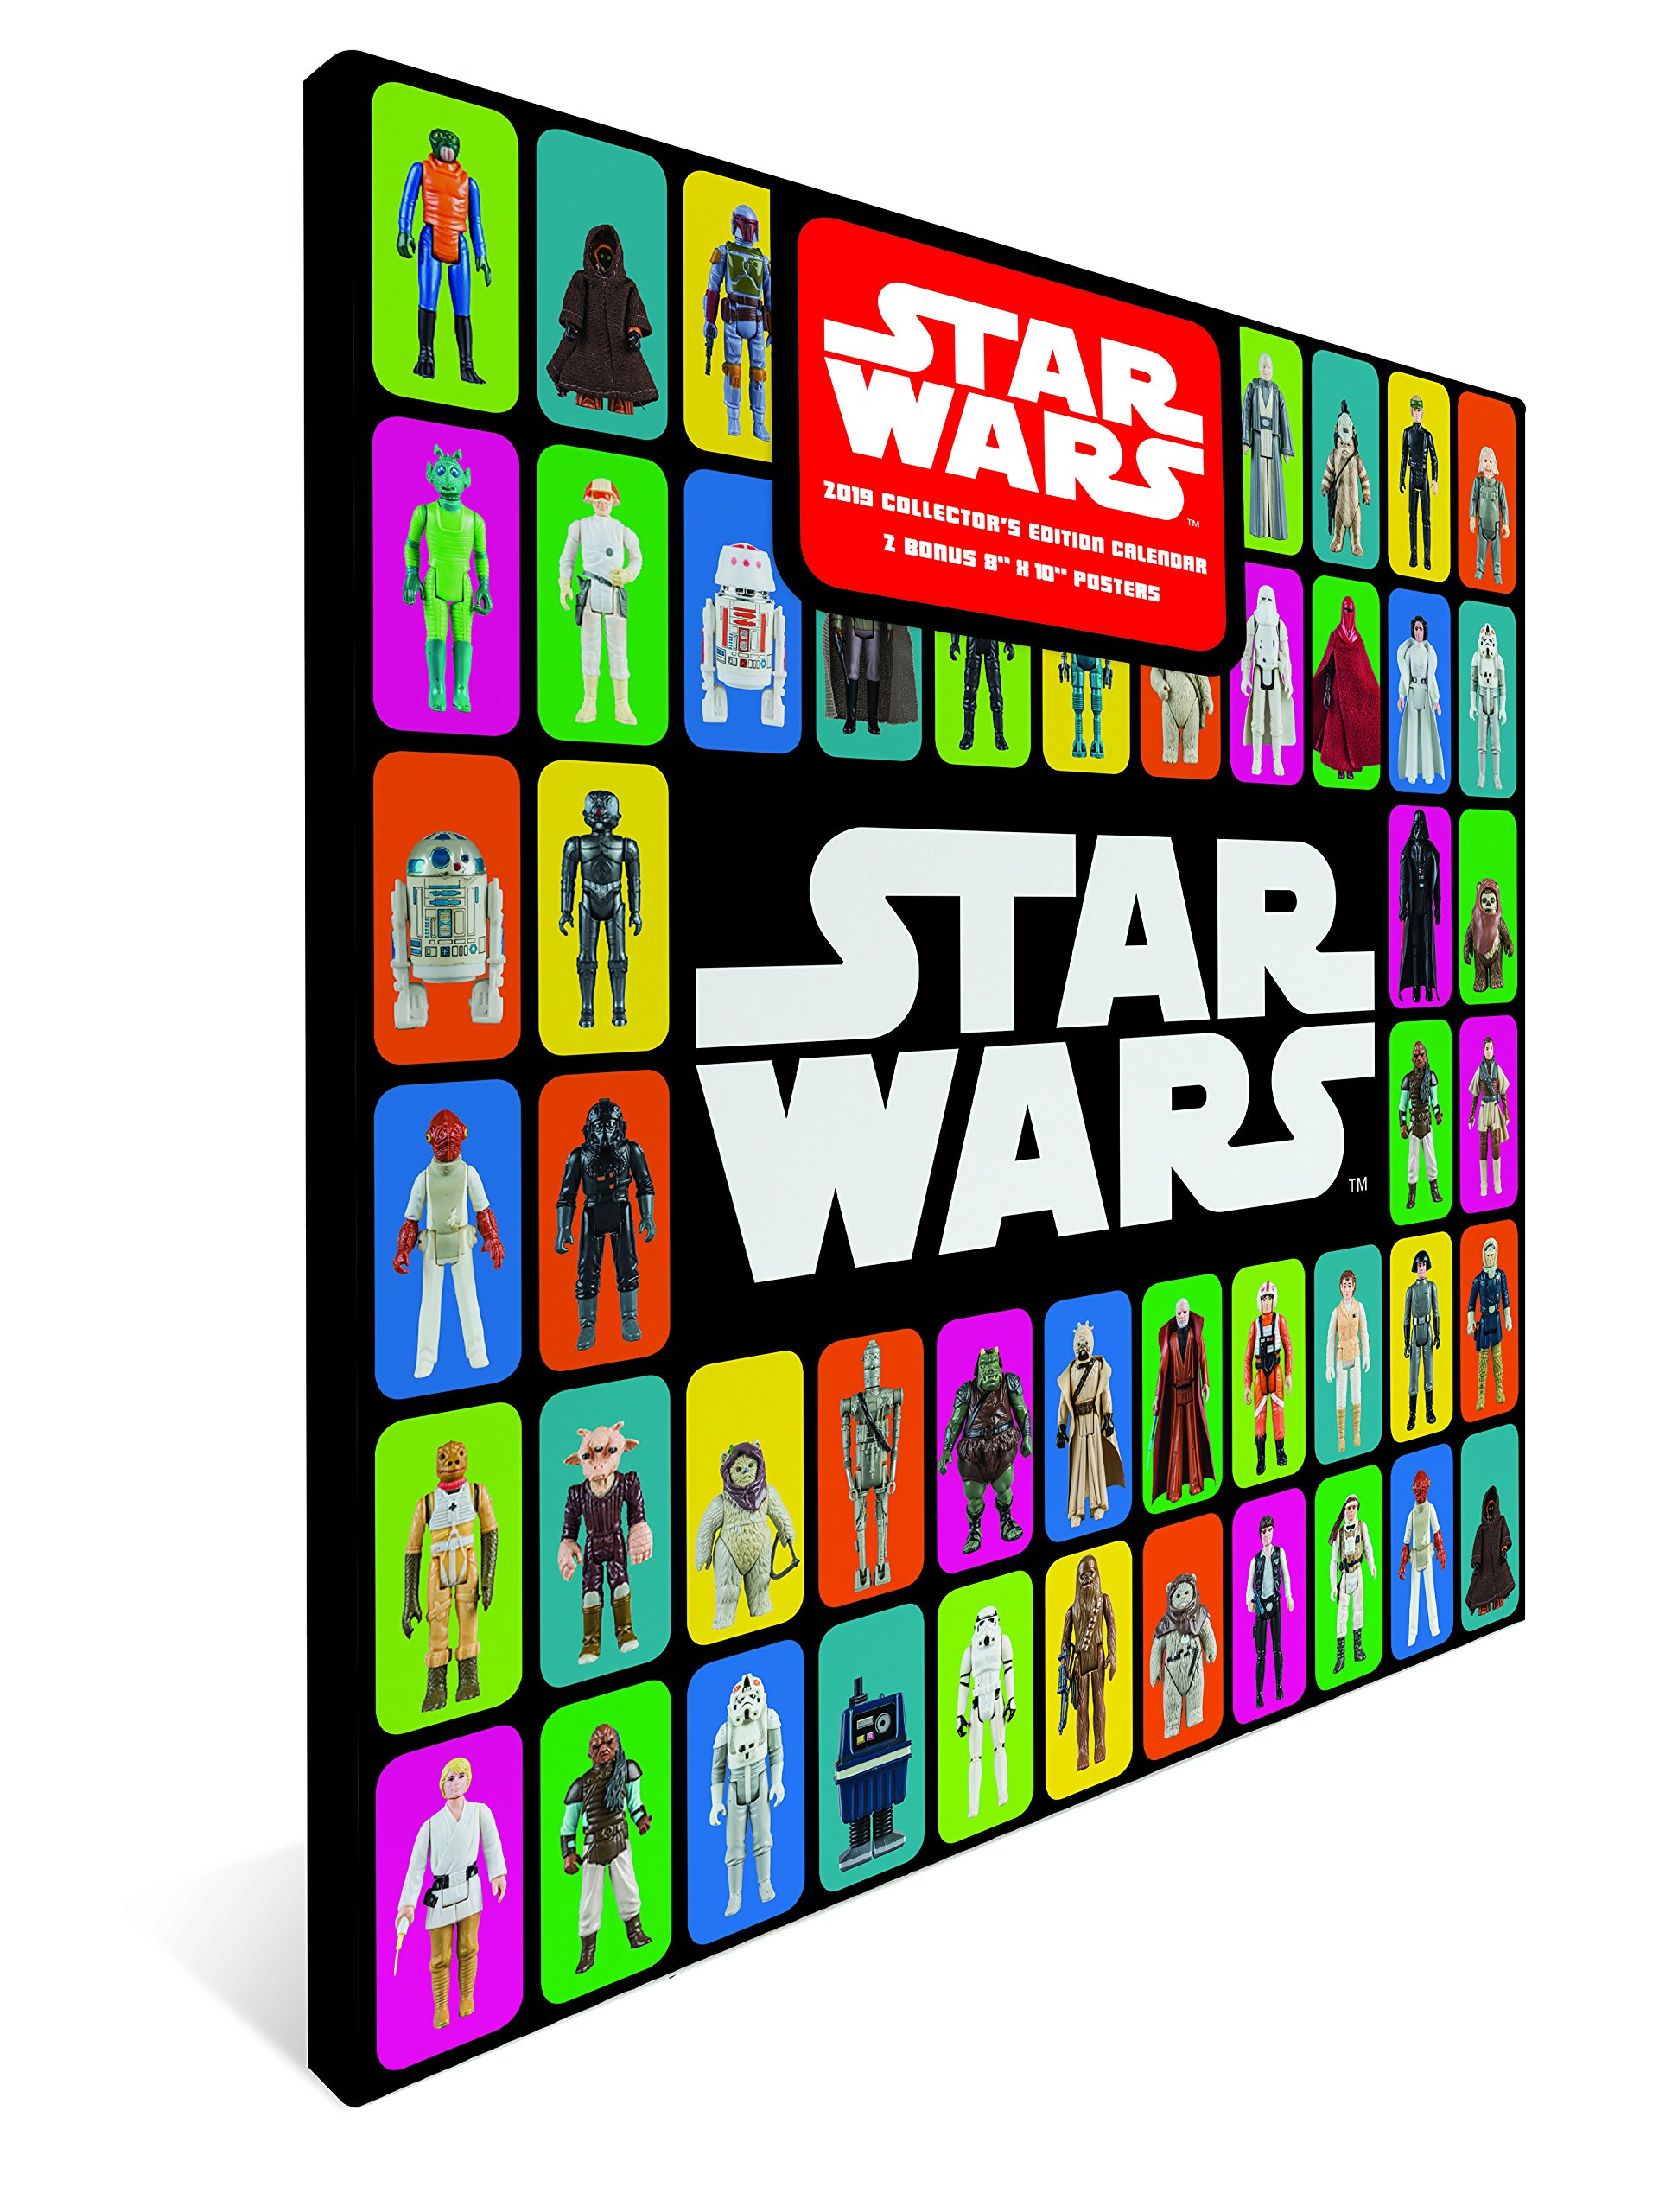 Star Wars Kenner Calendar